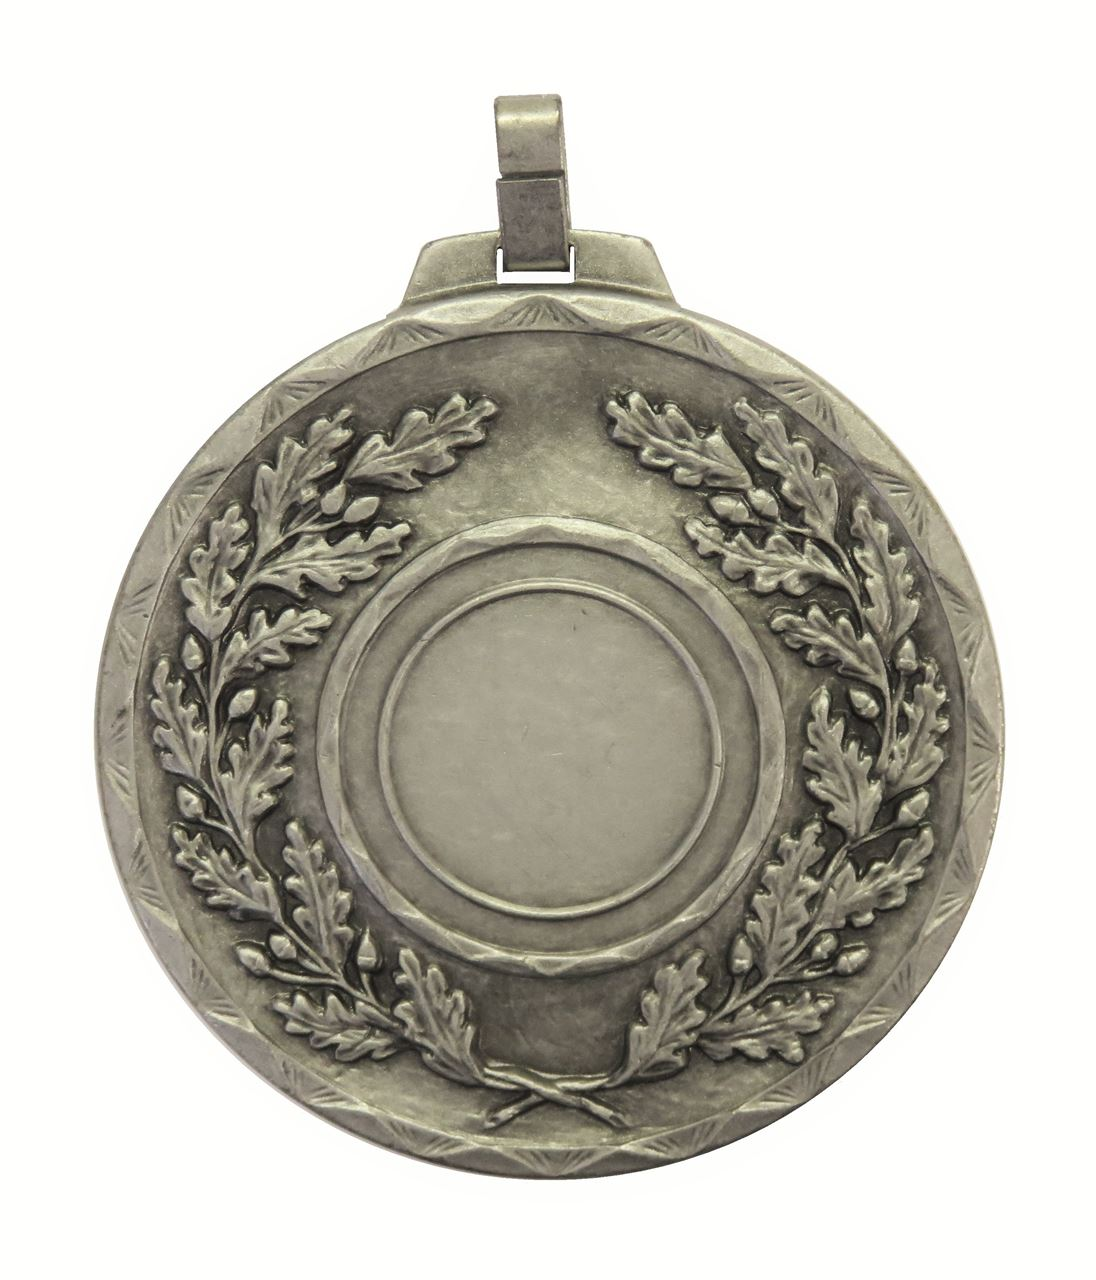 Silver Quality Classic Wreath Medal (size: 70mm) - 5595E